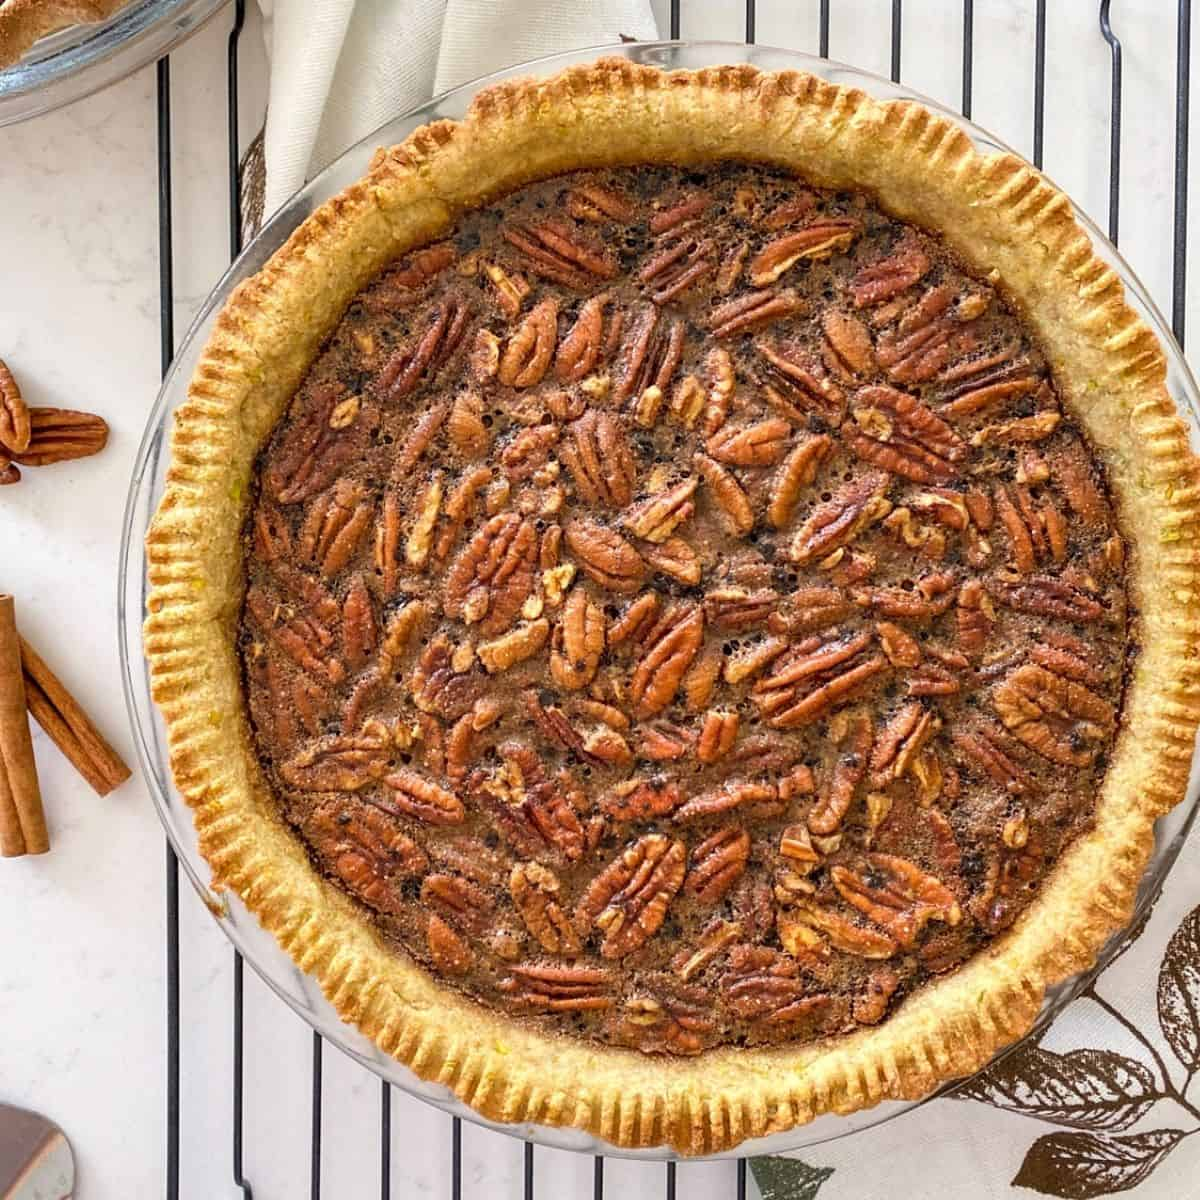 Pecan pie on cooling rack with cinnamon sticks and pecans beside it.